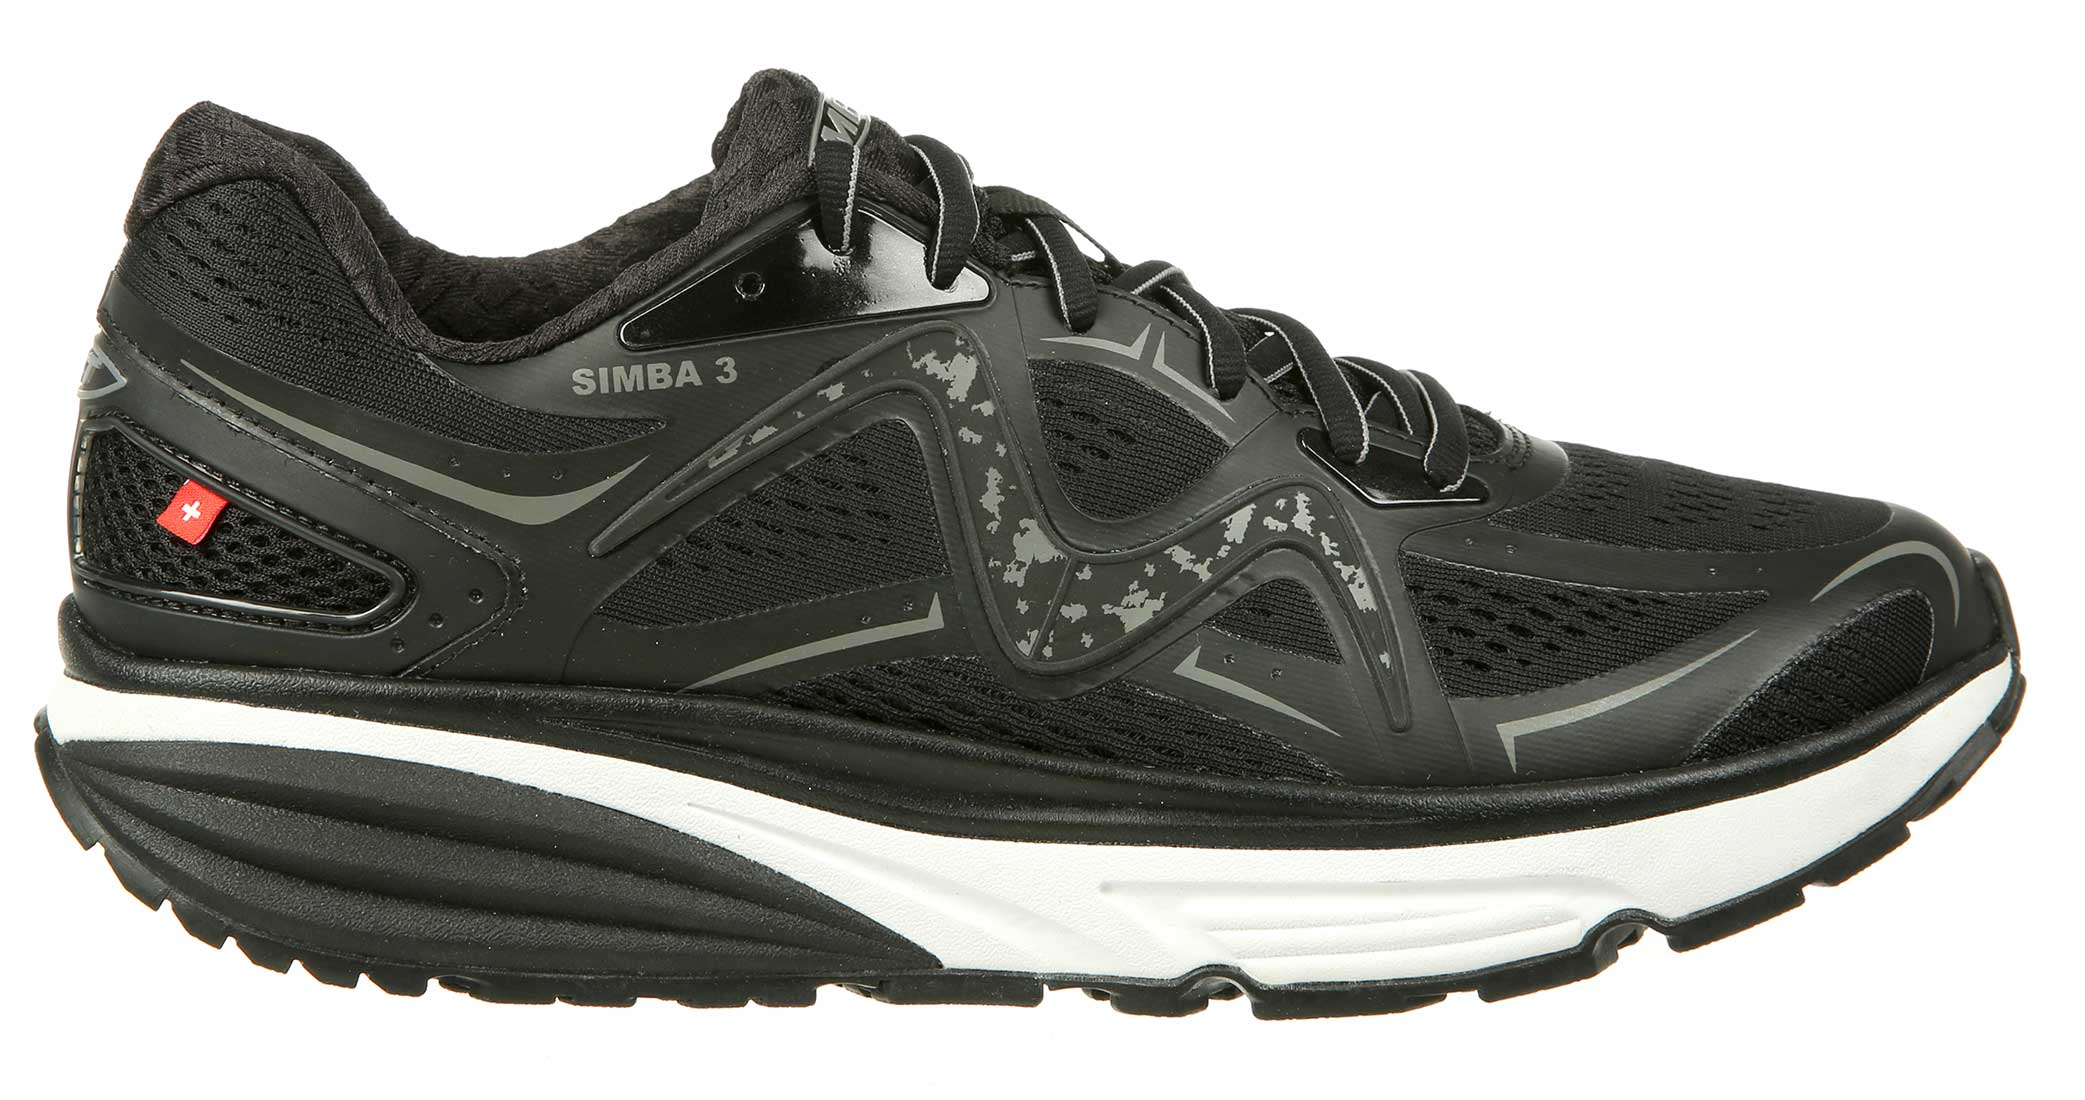 100a52aeee8f MBT - For The Human Movement MBT Shoes Women s Simba ...